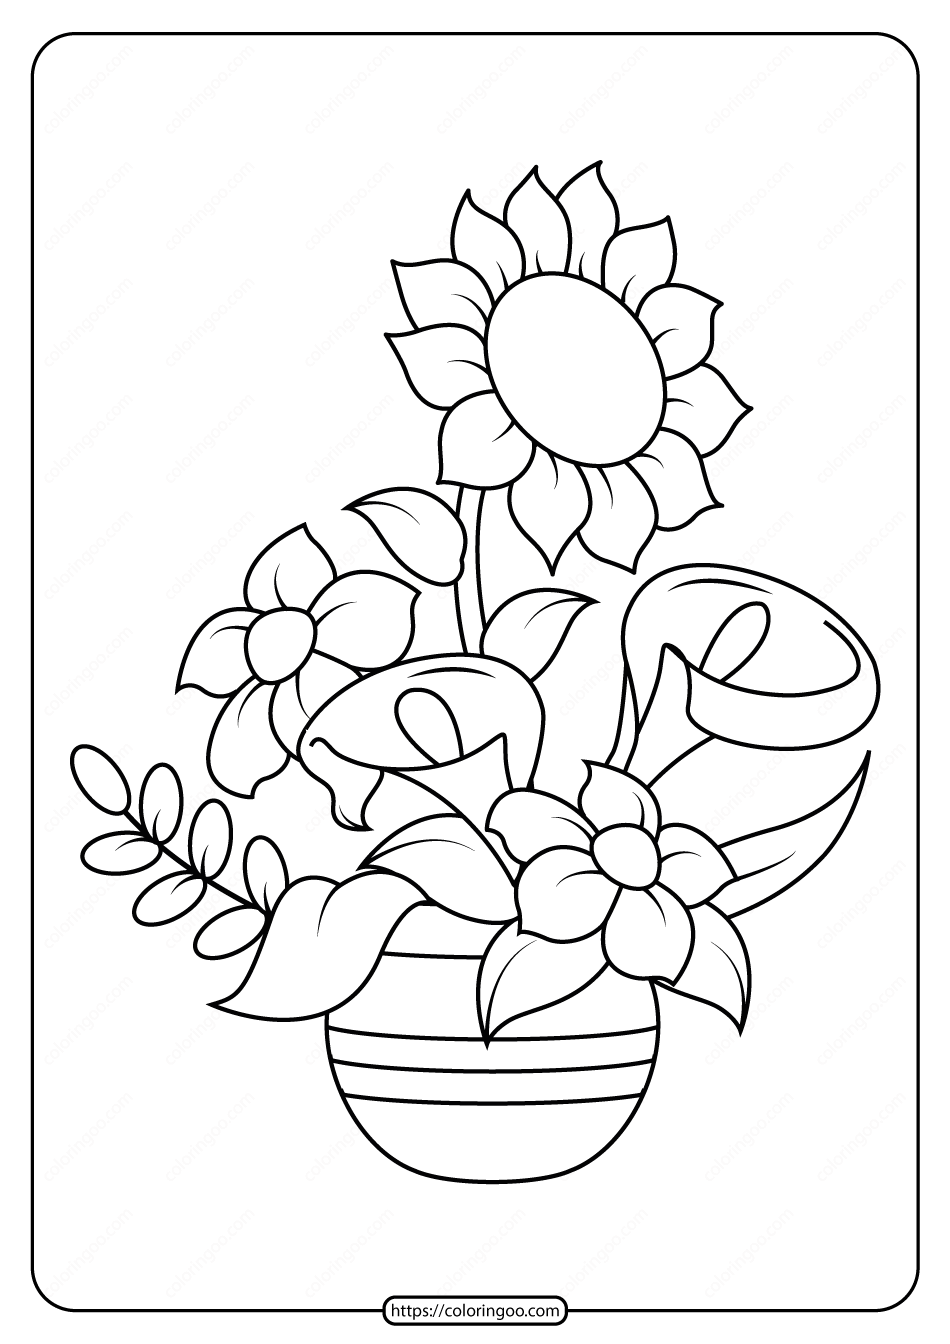 free flower coloring sheets spring flower coloring pages to download and print for free coloring sheets flower free